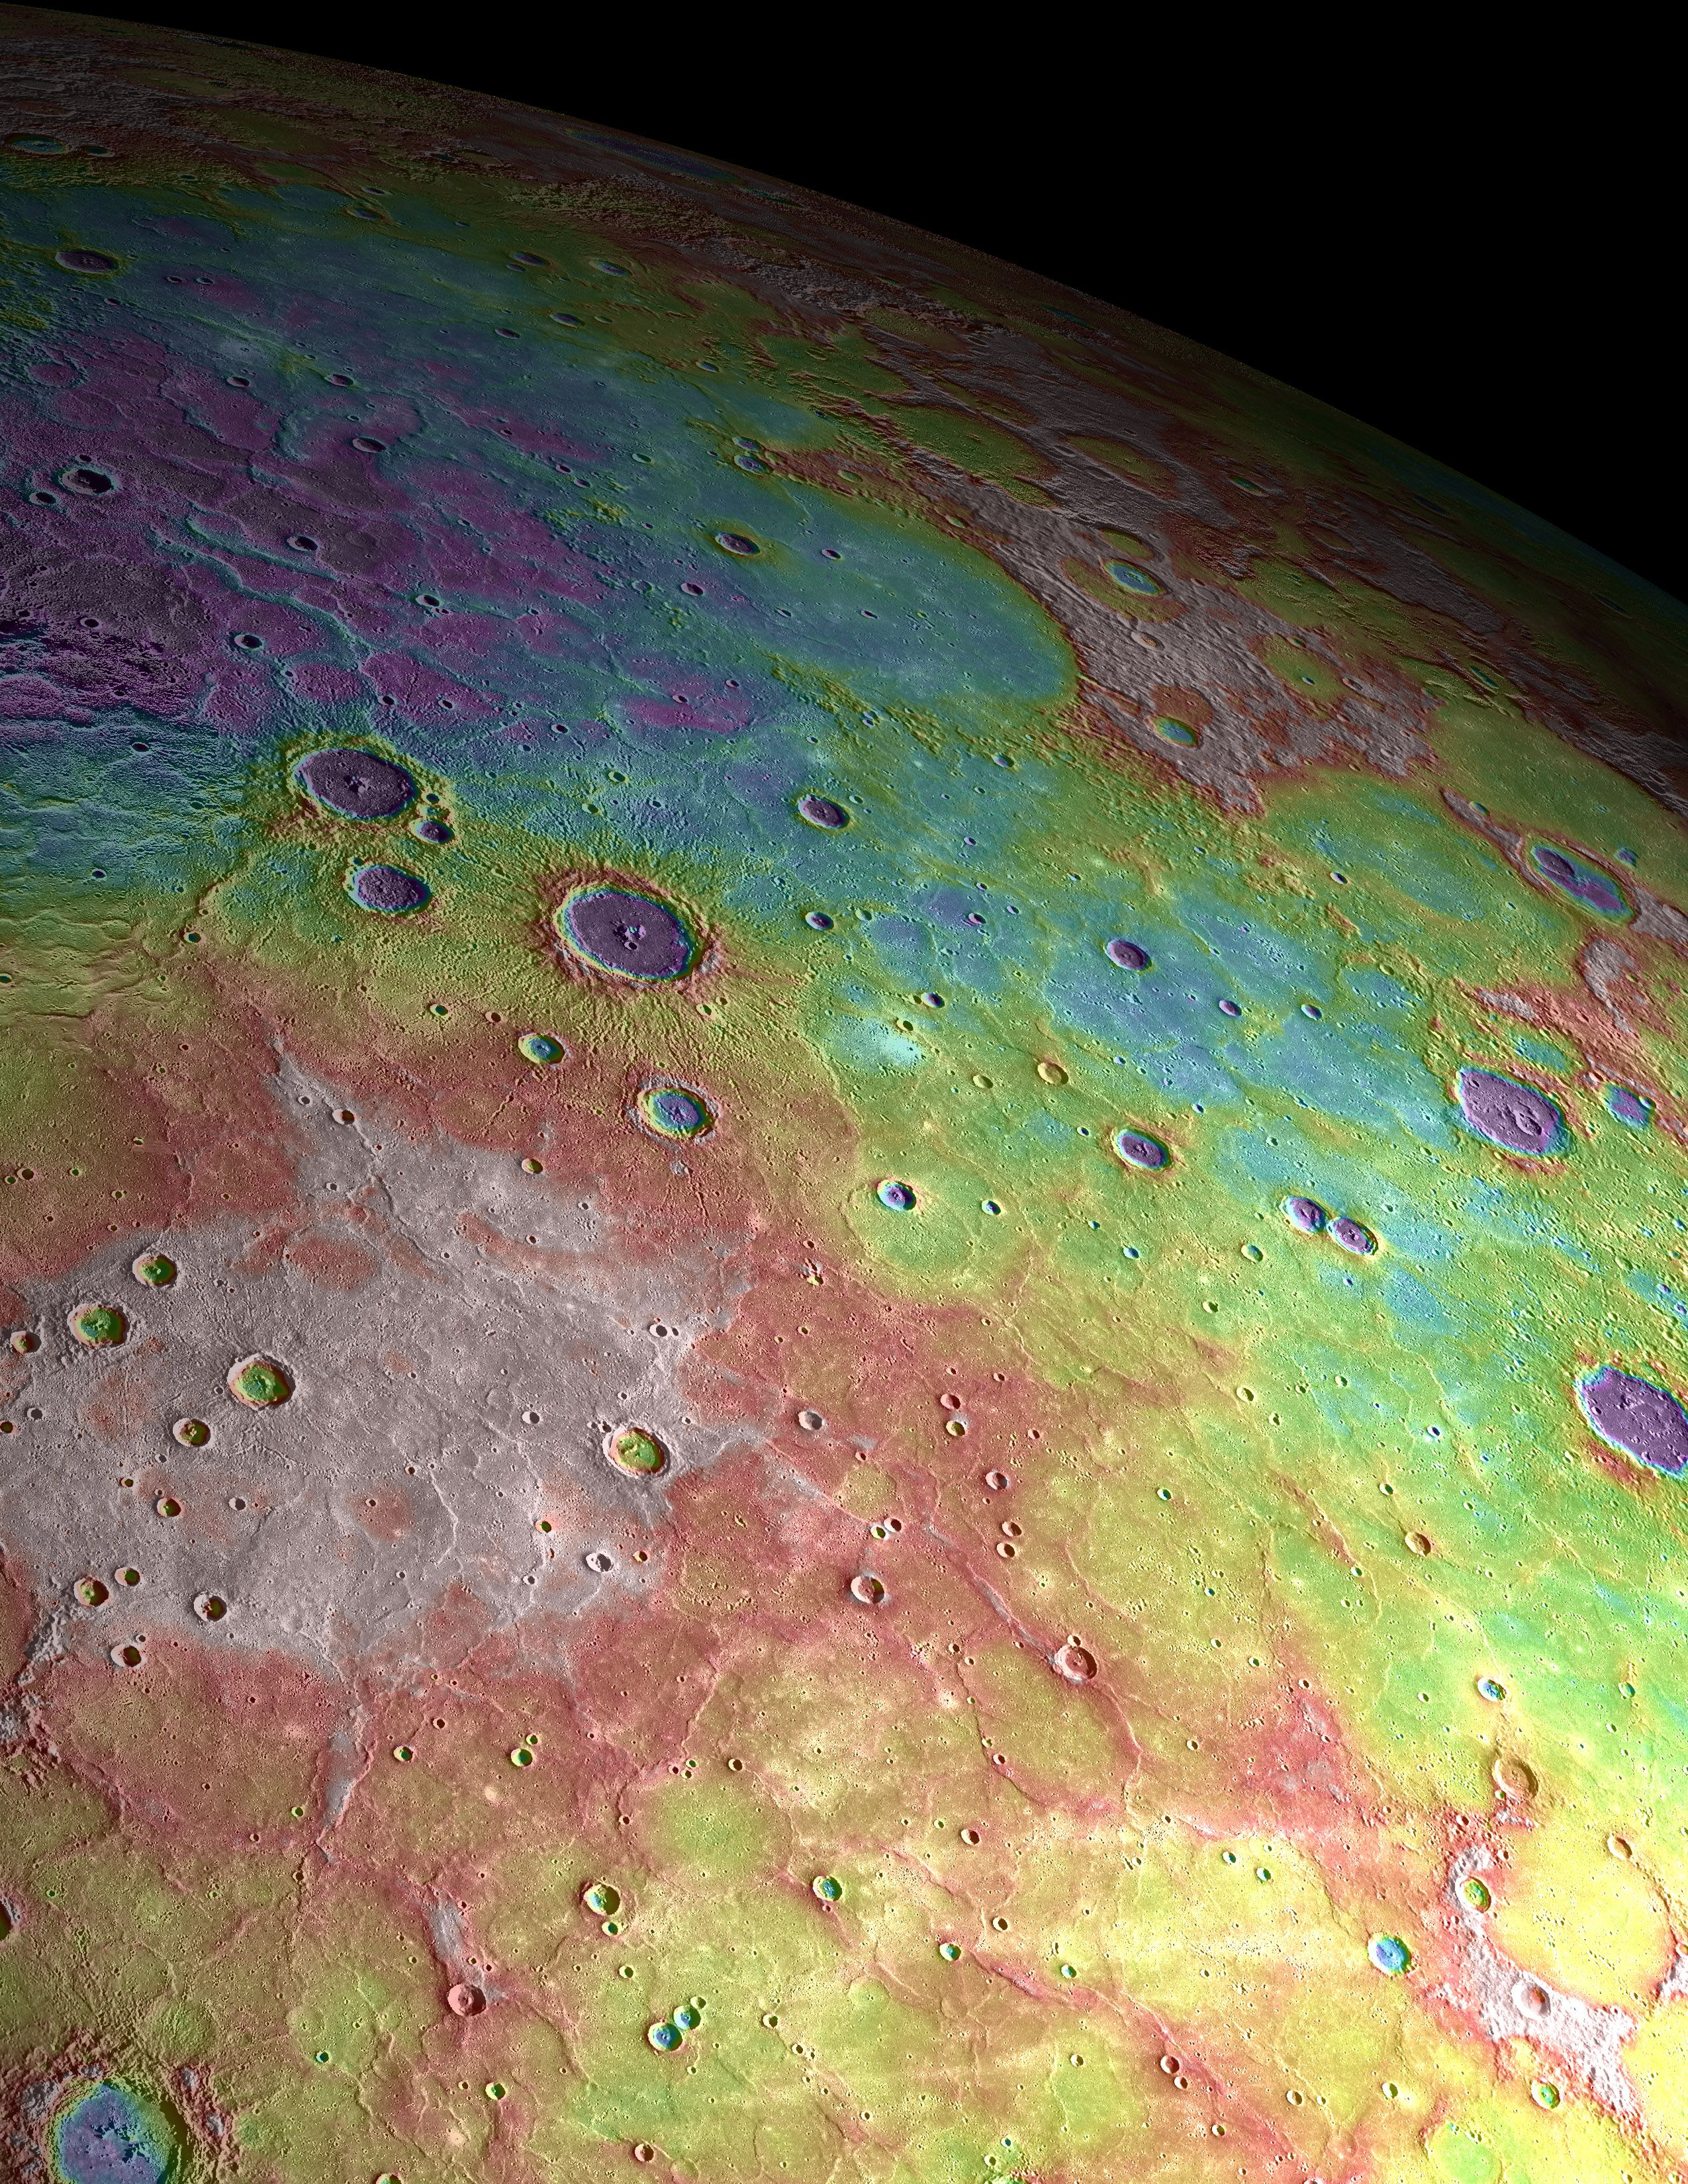 New observations from a spacecraft orbiting Mercury have revealed that the tiny, pockmarked planet harbors a highly unusual interior — and the craft's glimpse of Mercury's surface topography suggests the planet has had a very dynamic history.